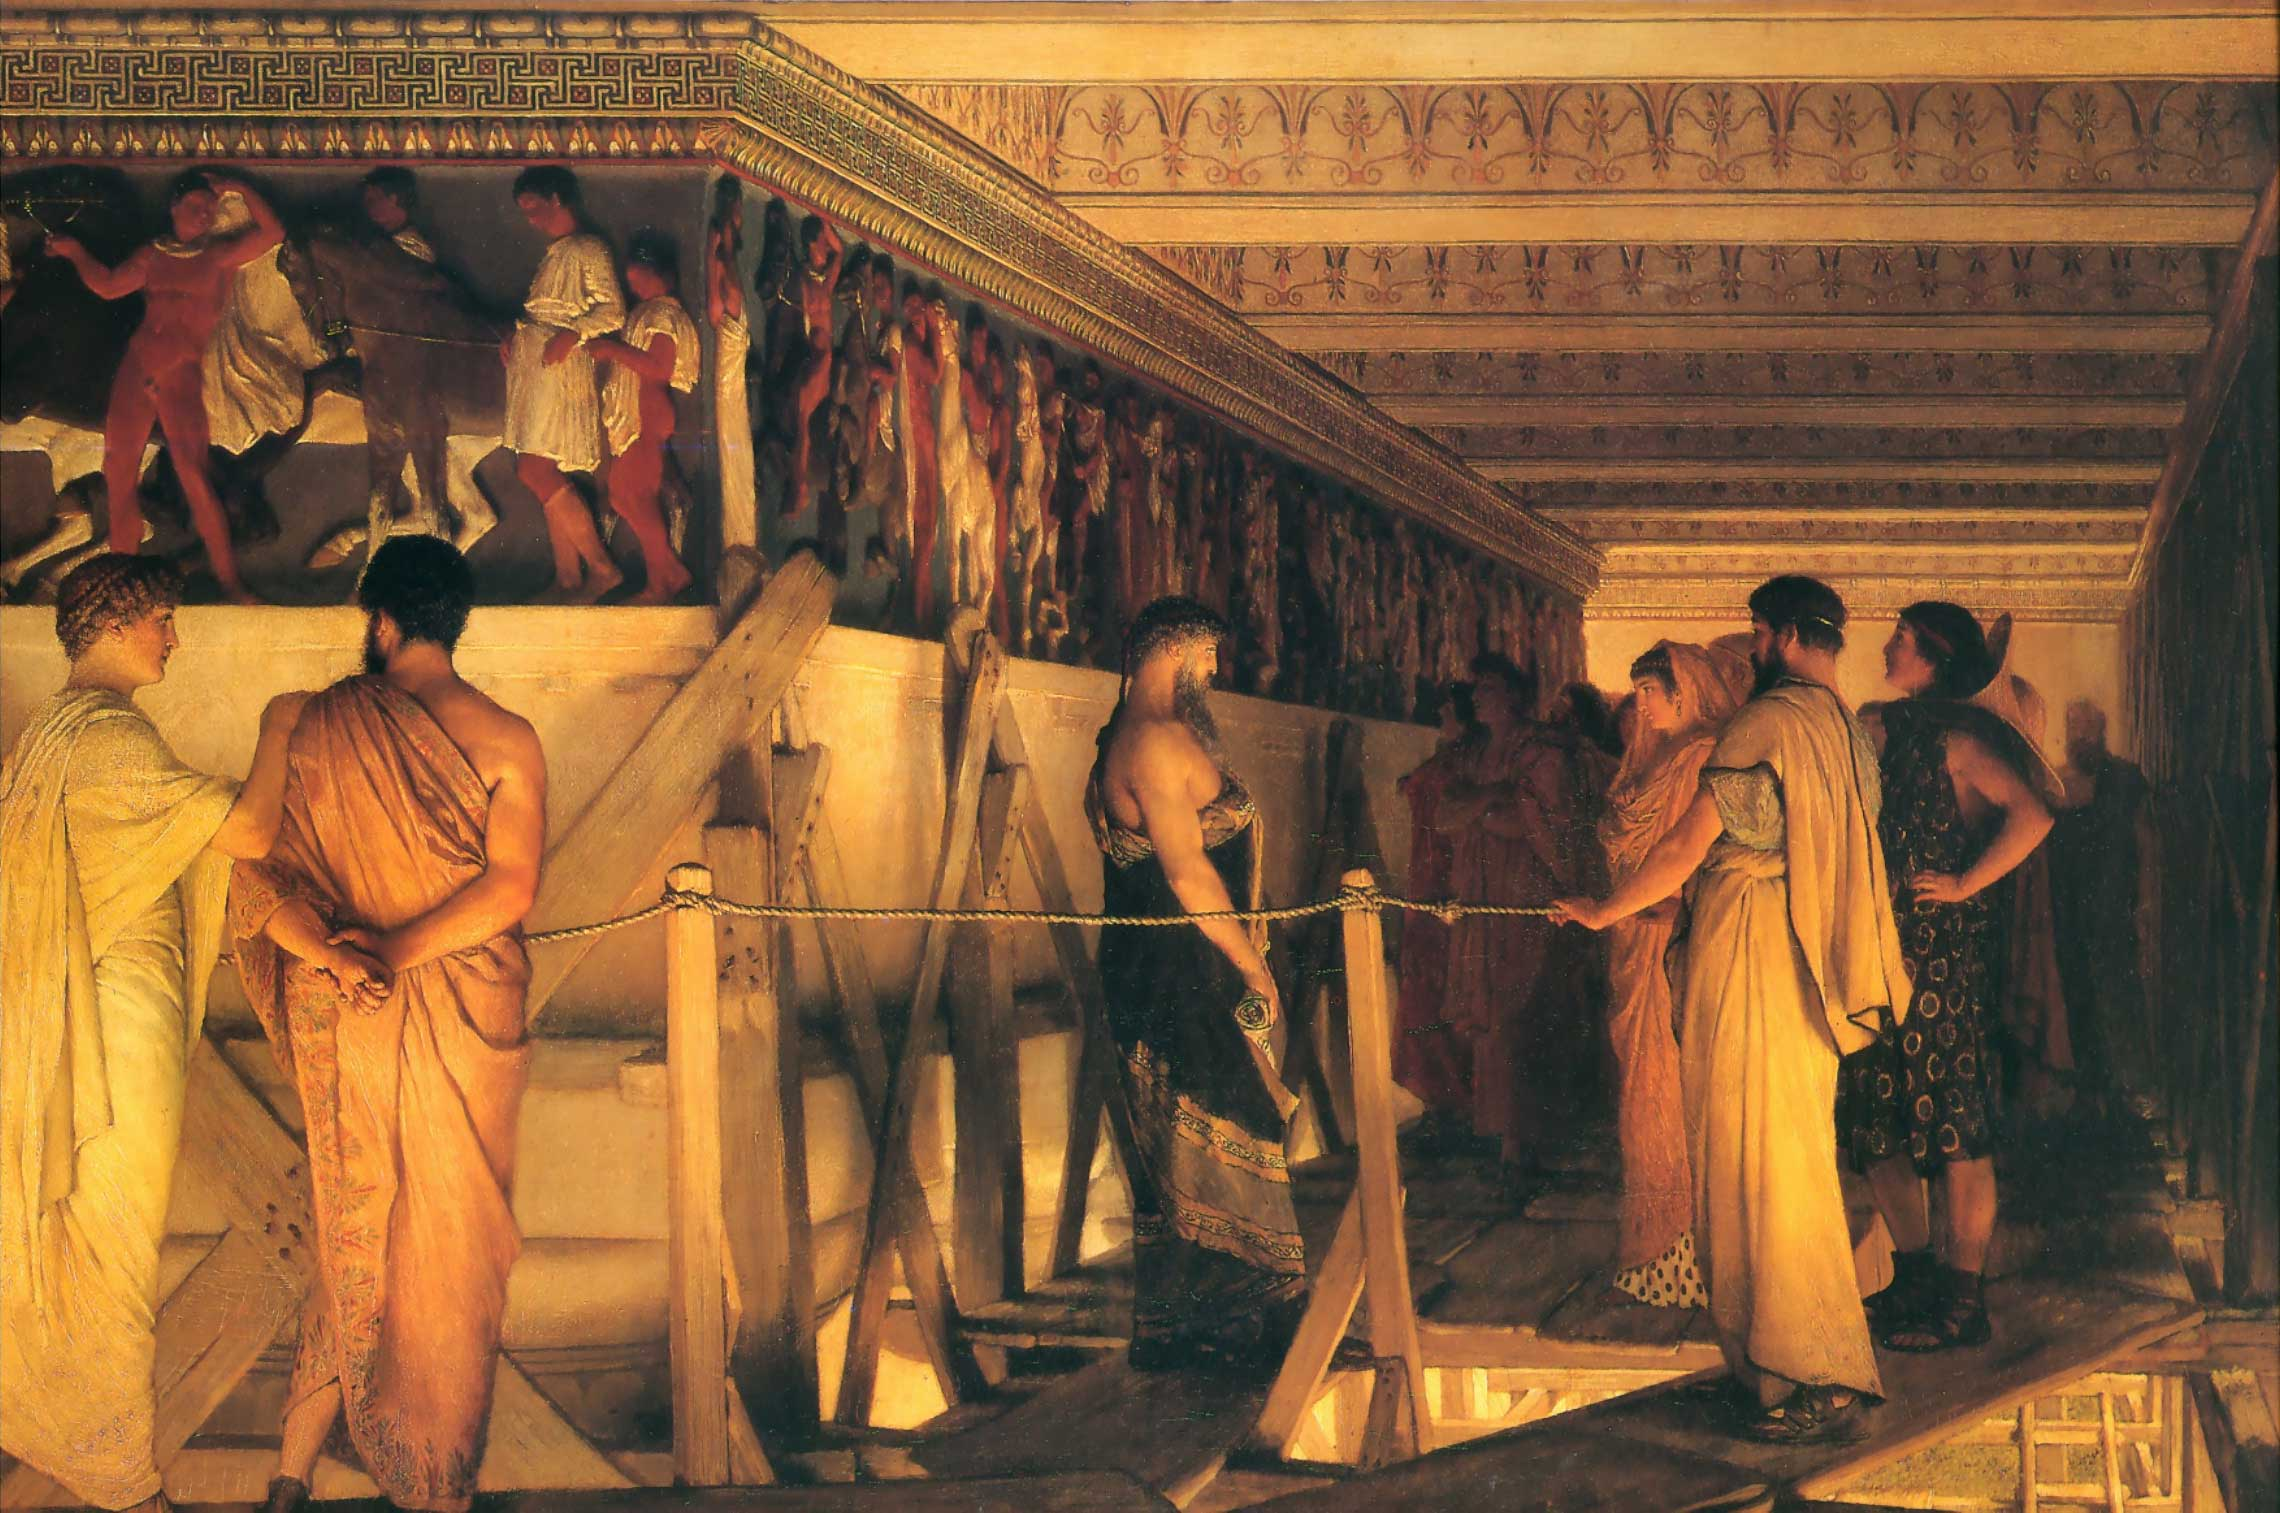 http://www.sightswithin.com/Sir_Lawrence.Alma-Tadema/Phidias_Showing_the_Frieze_of_the_Parthenon_to_his_Friends.jpg